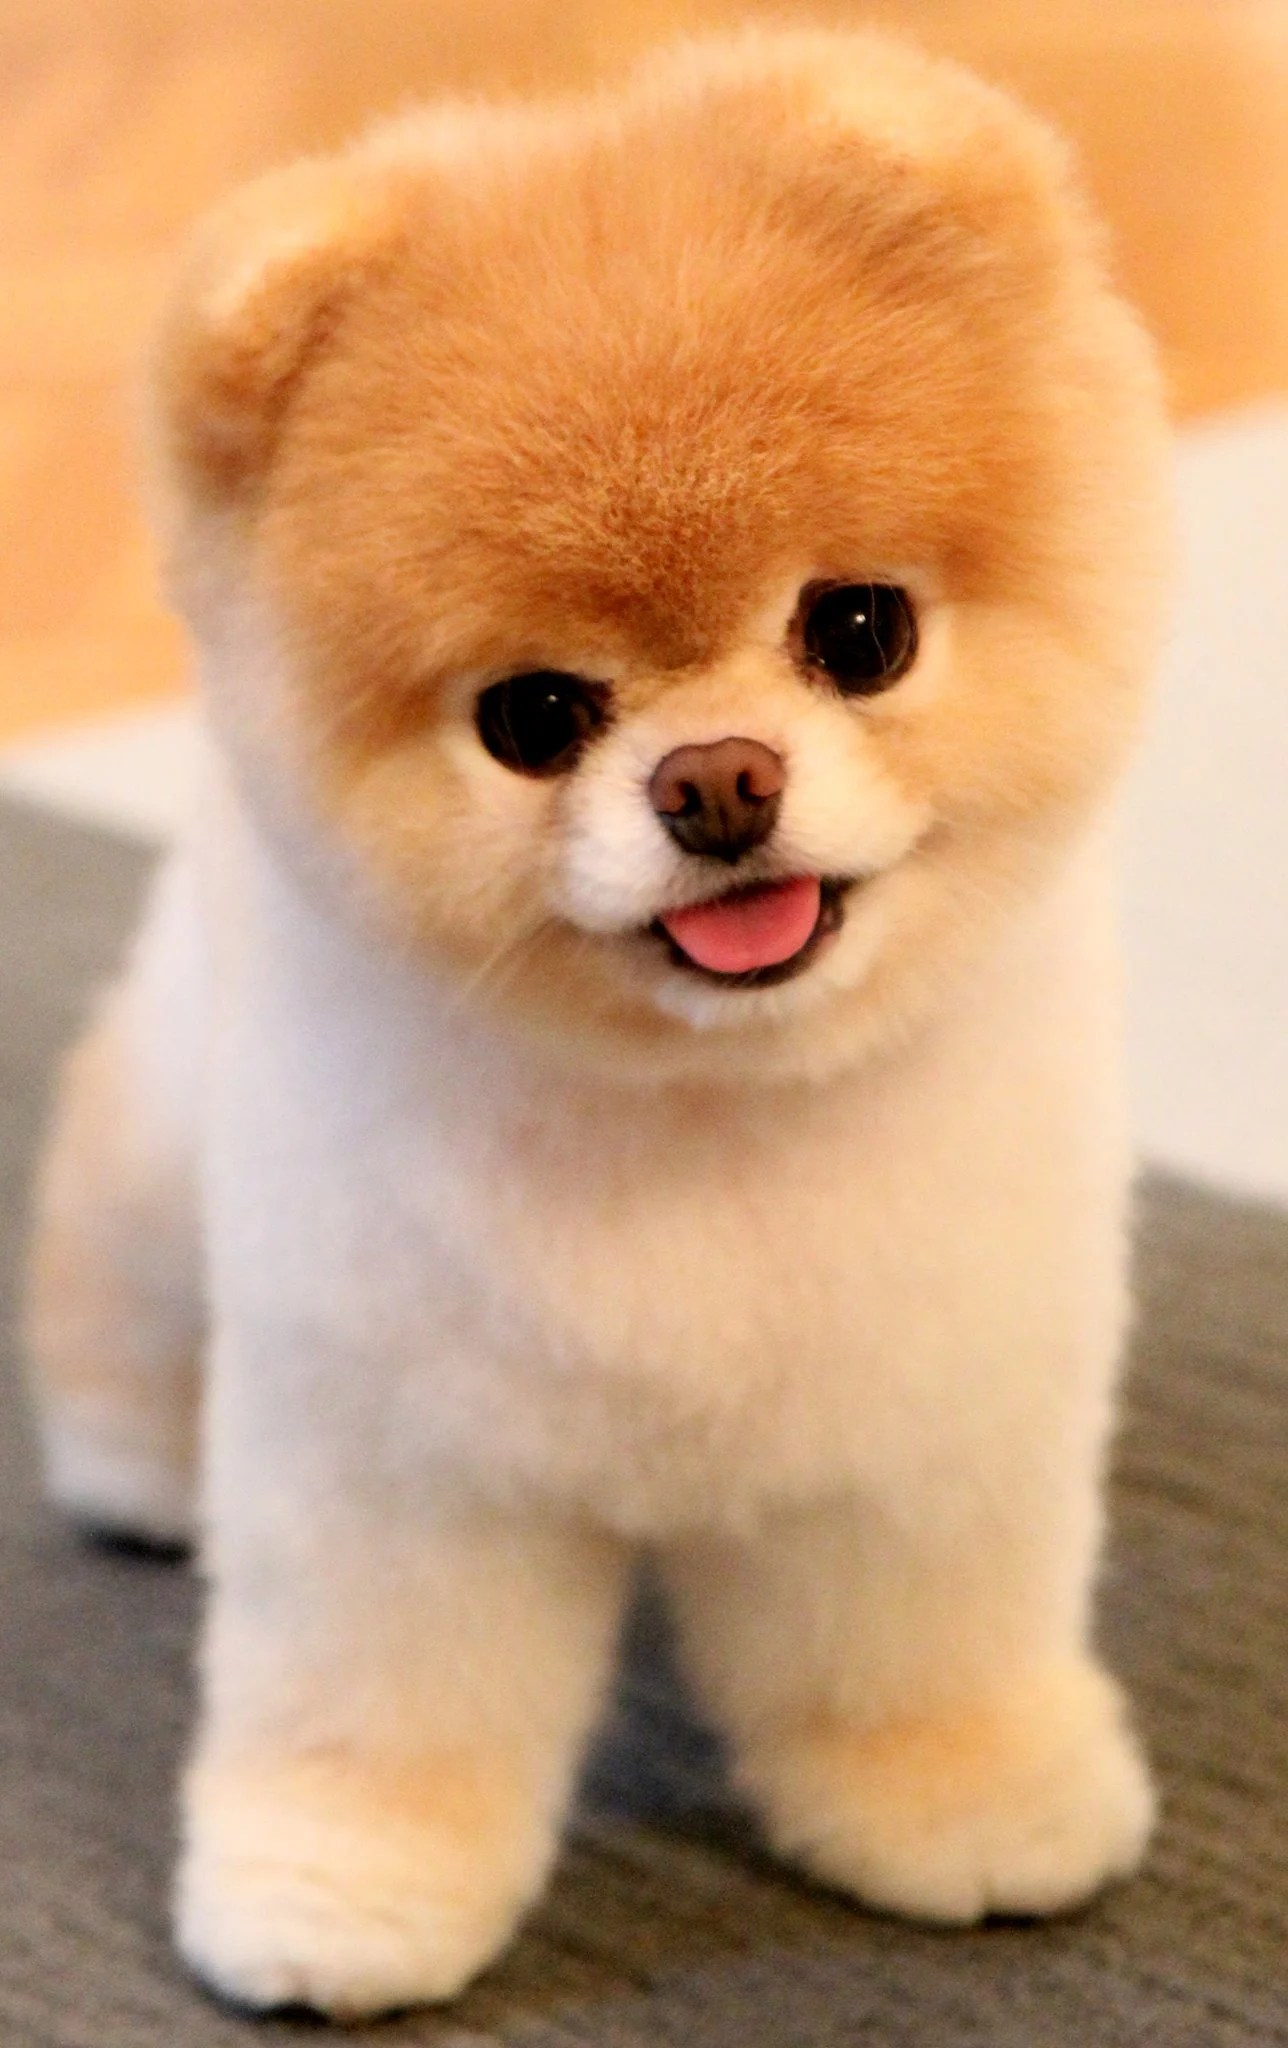 Fullsize Of Why Are Dogs So Cute